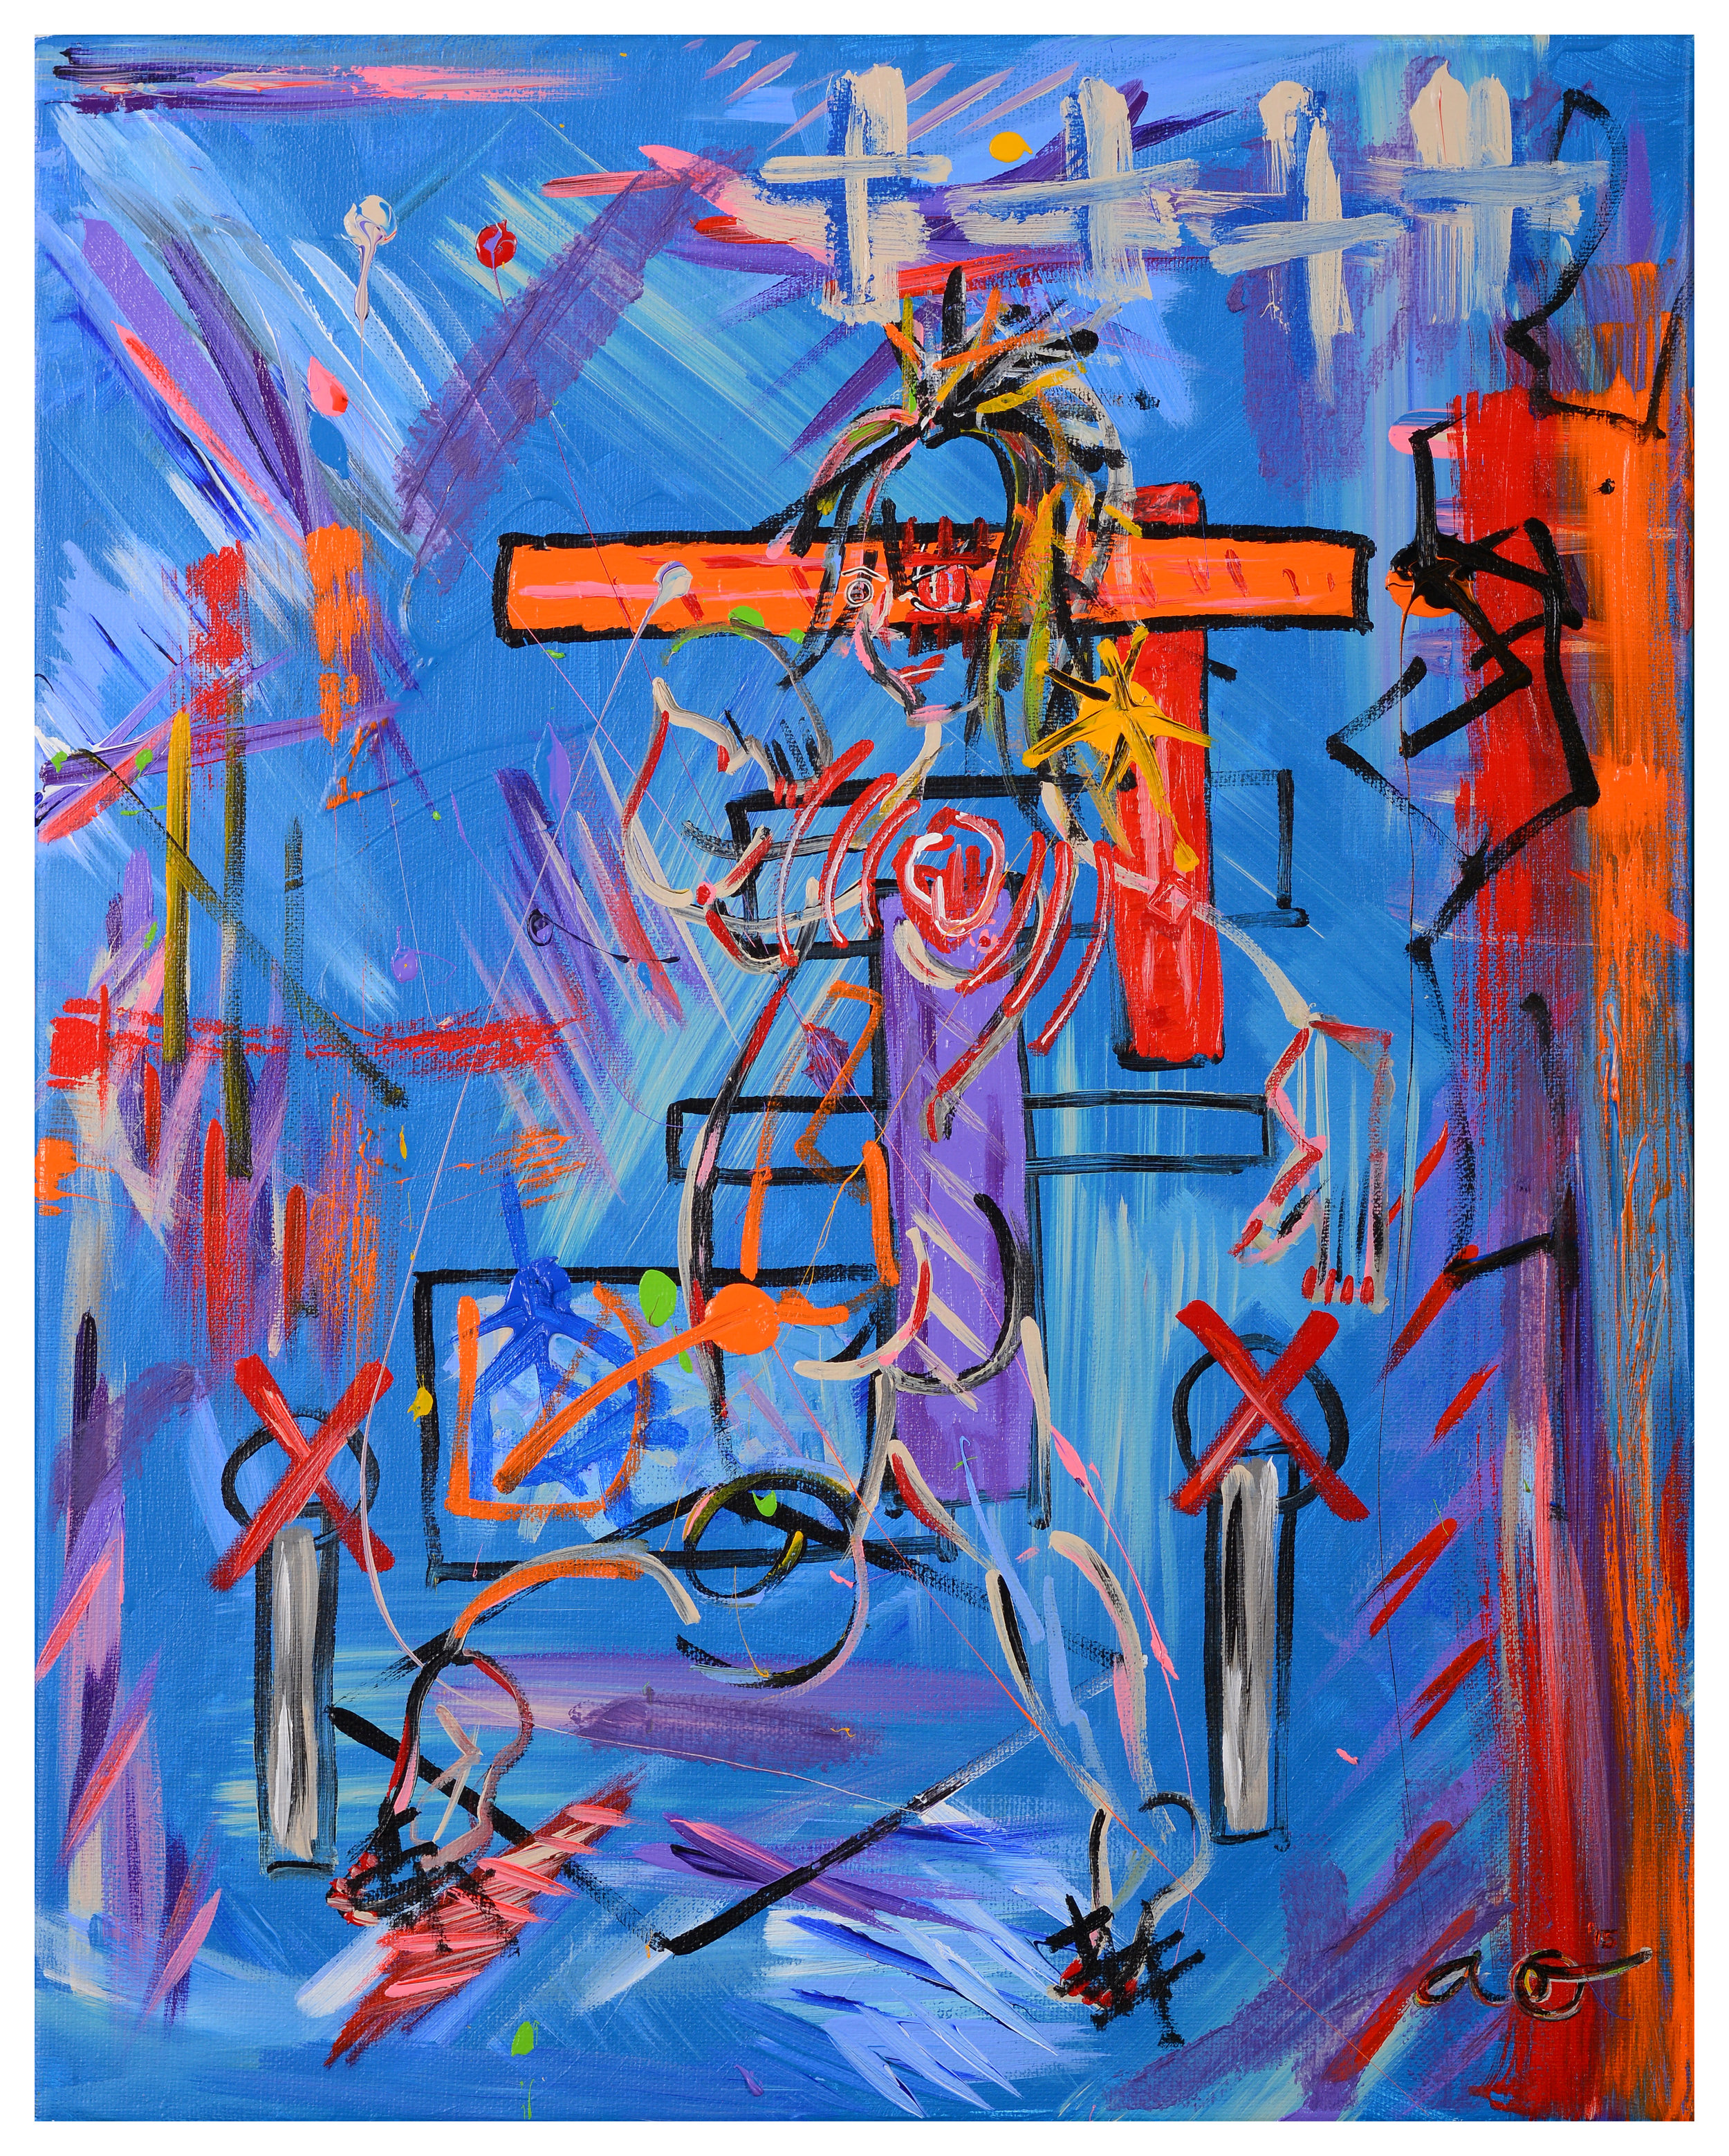 Untitled XVIII (Nude Descending Staircase)